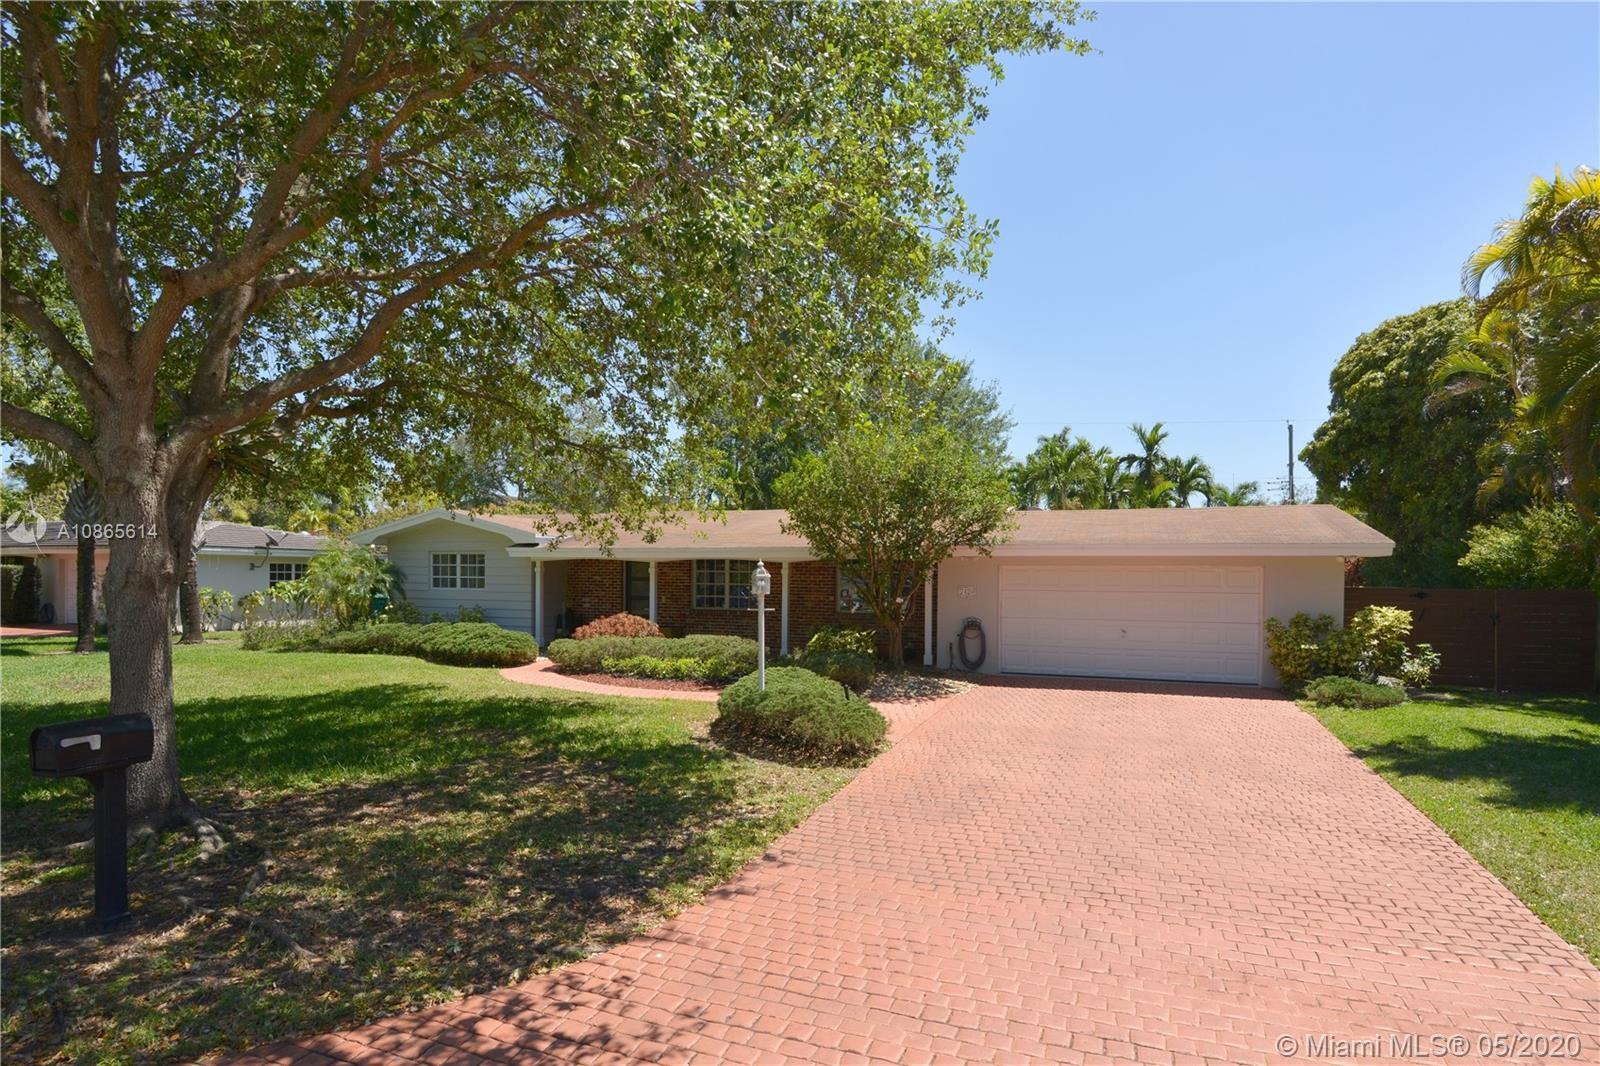 Beautiful home in North Pinecrest,  a great area with a great community and schools to raise a famil